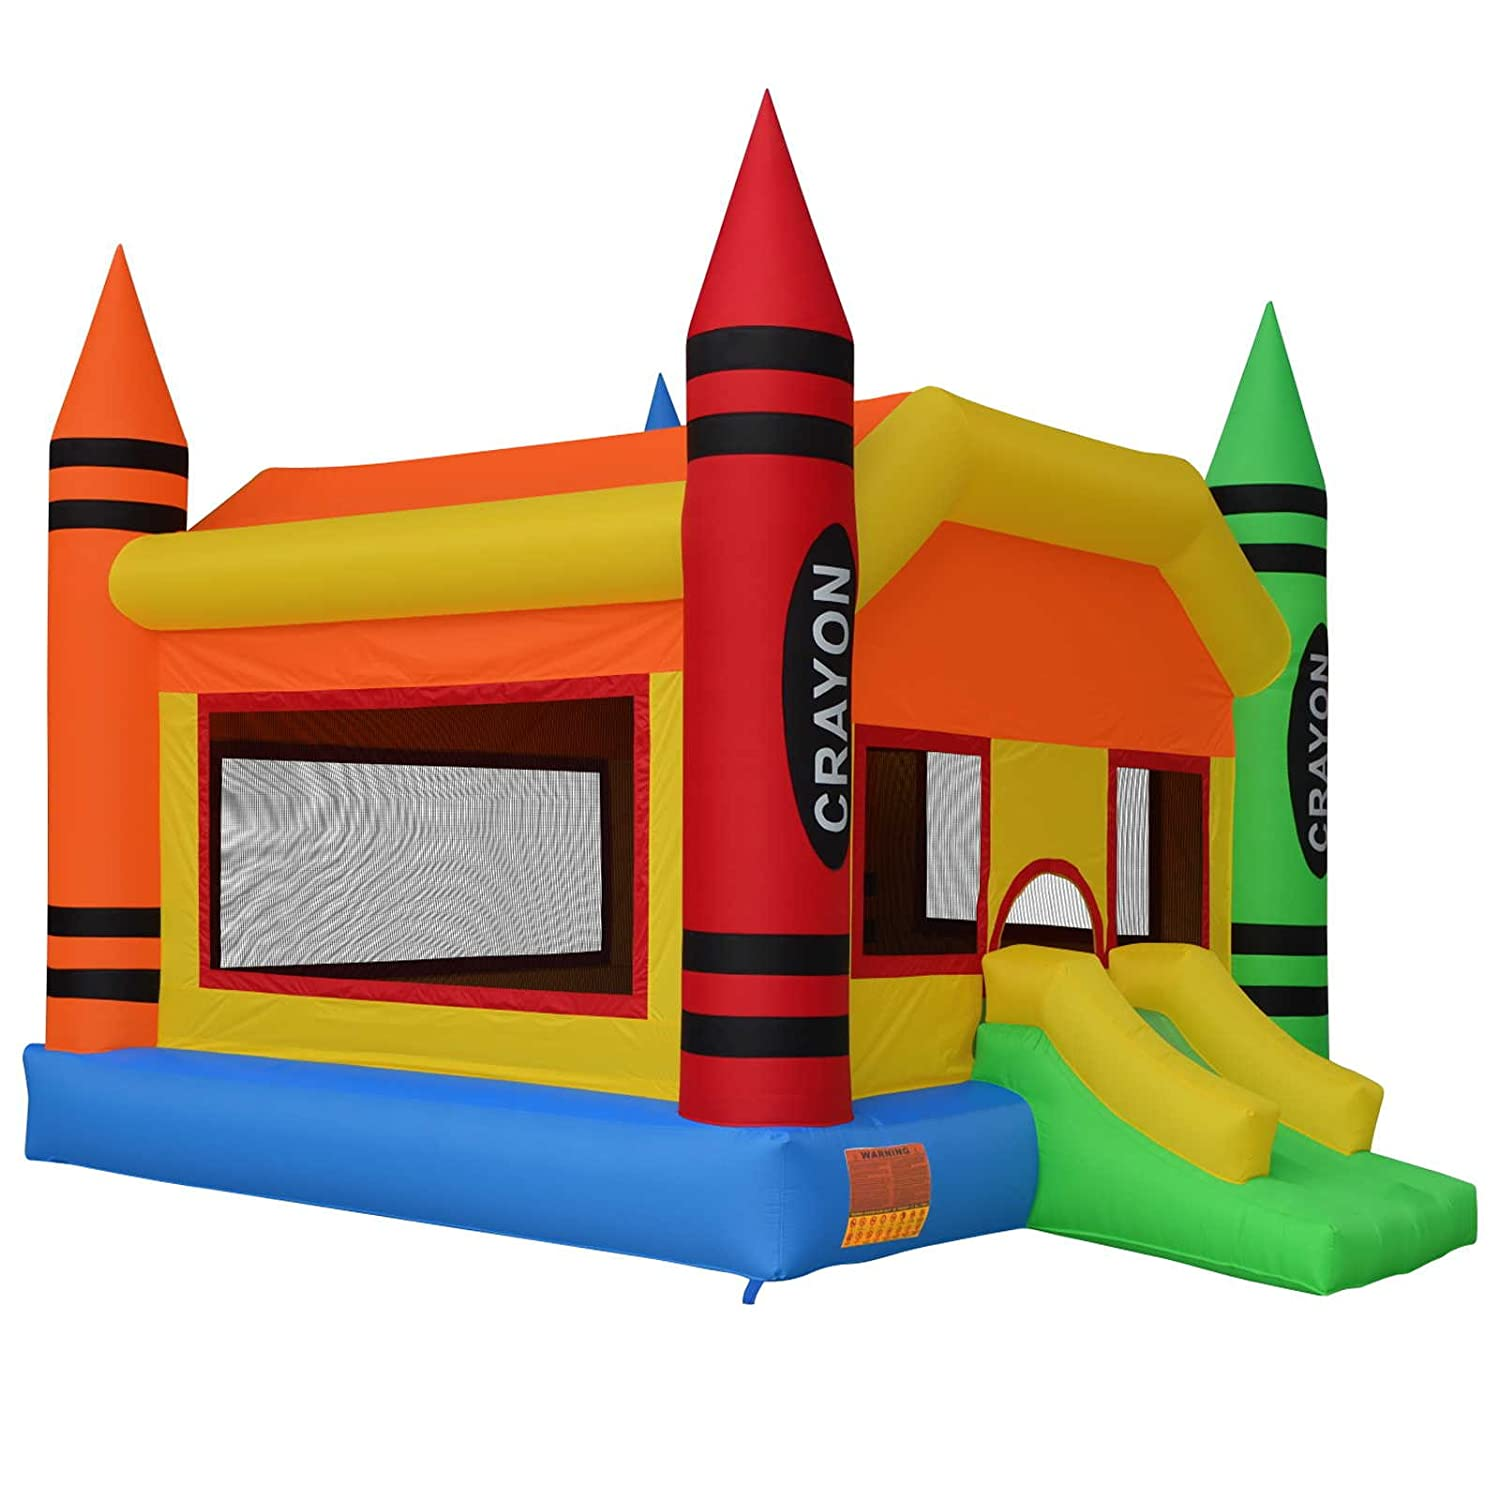 amazoncom cloud 9 the crayon bounce house large inflatable bouncing jumper with slide without blower toys u0026 games - Bounce House For Sale